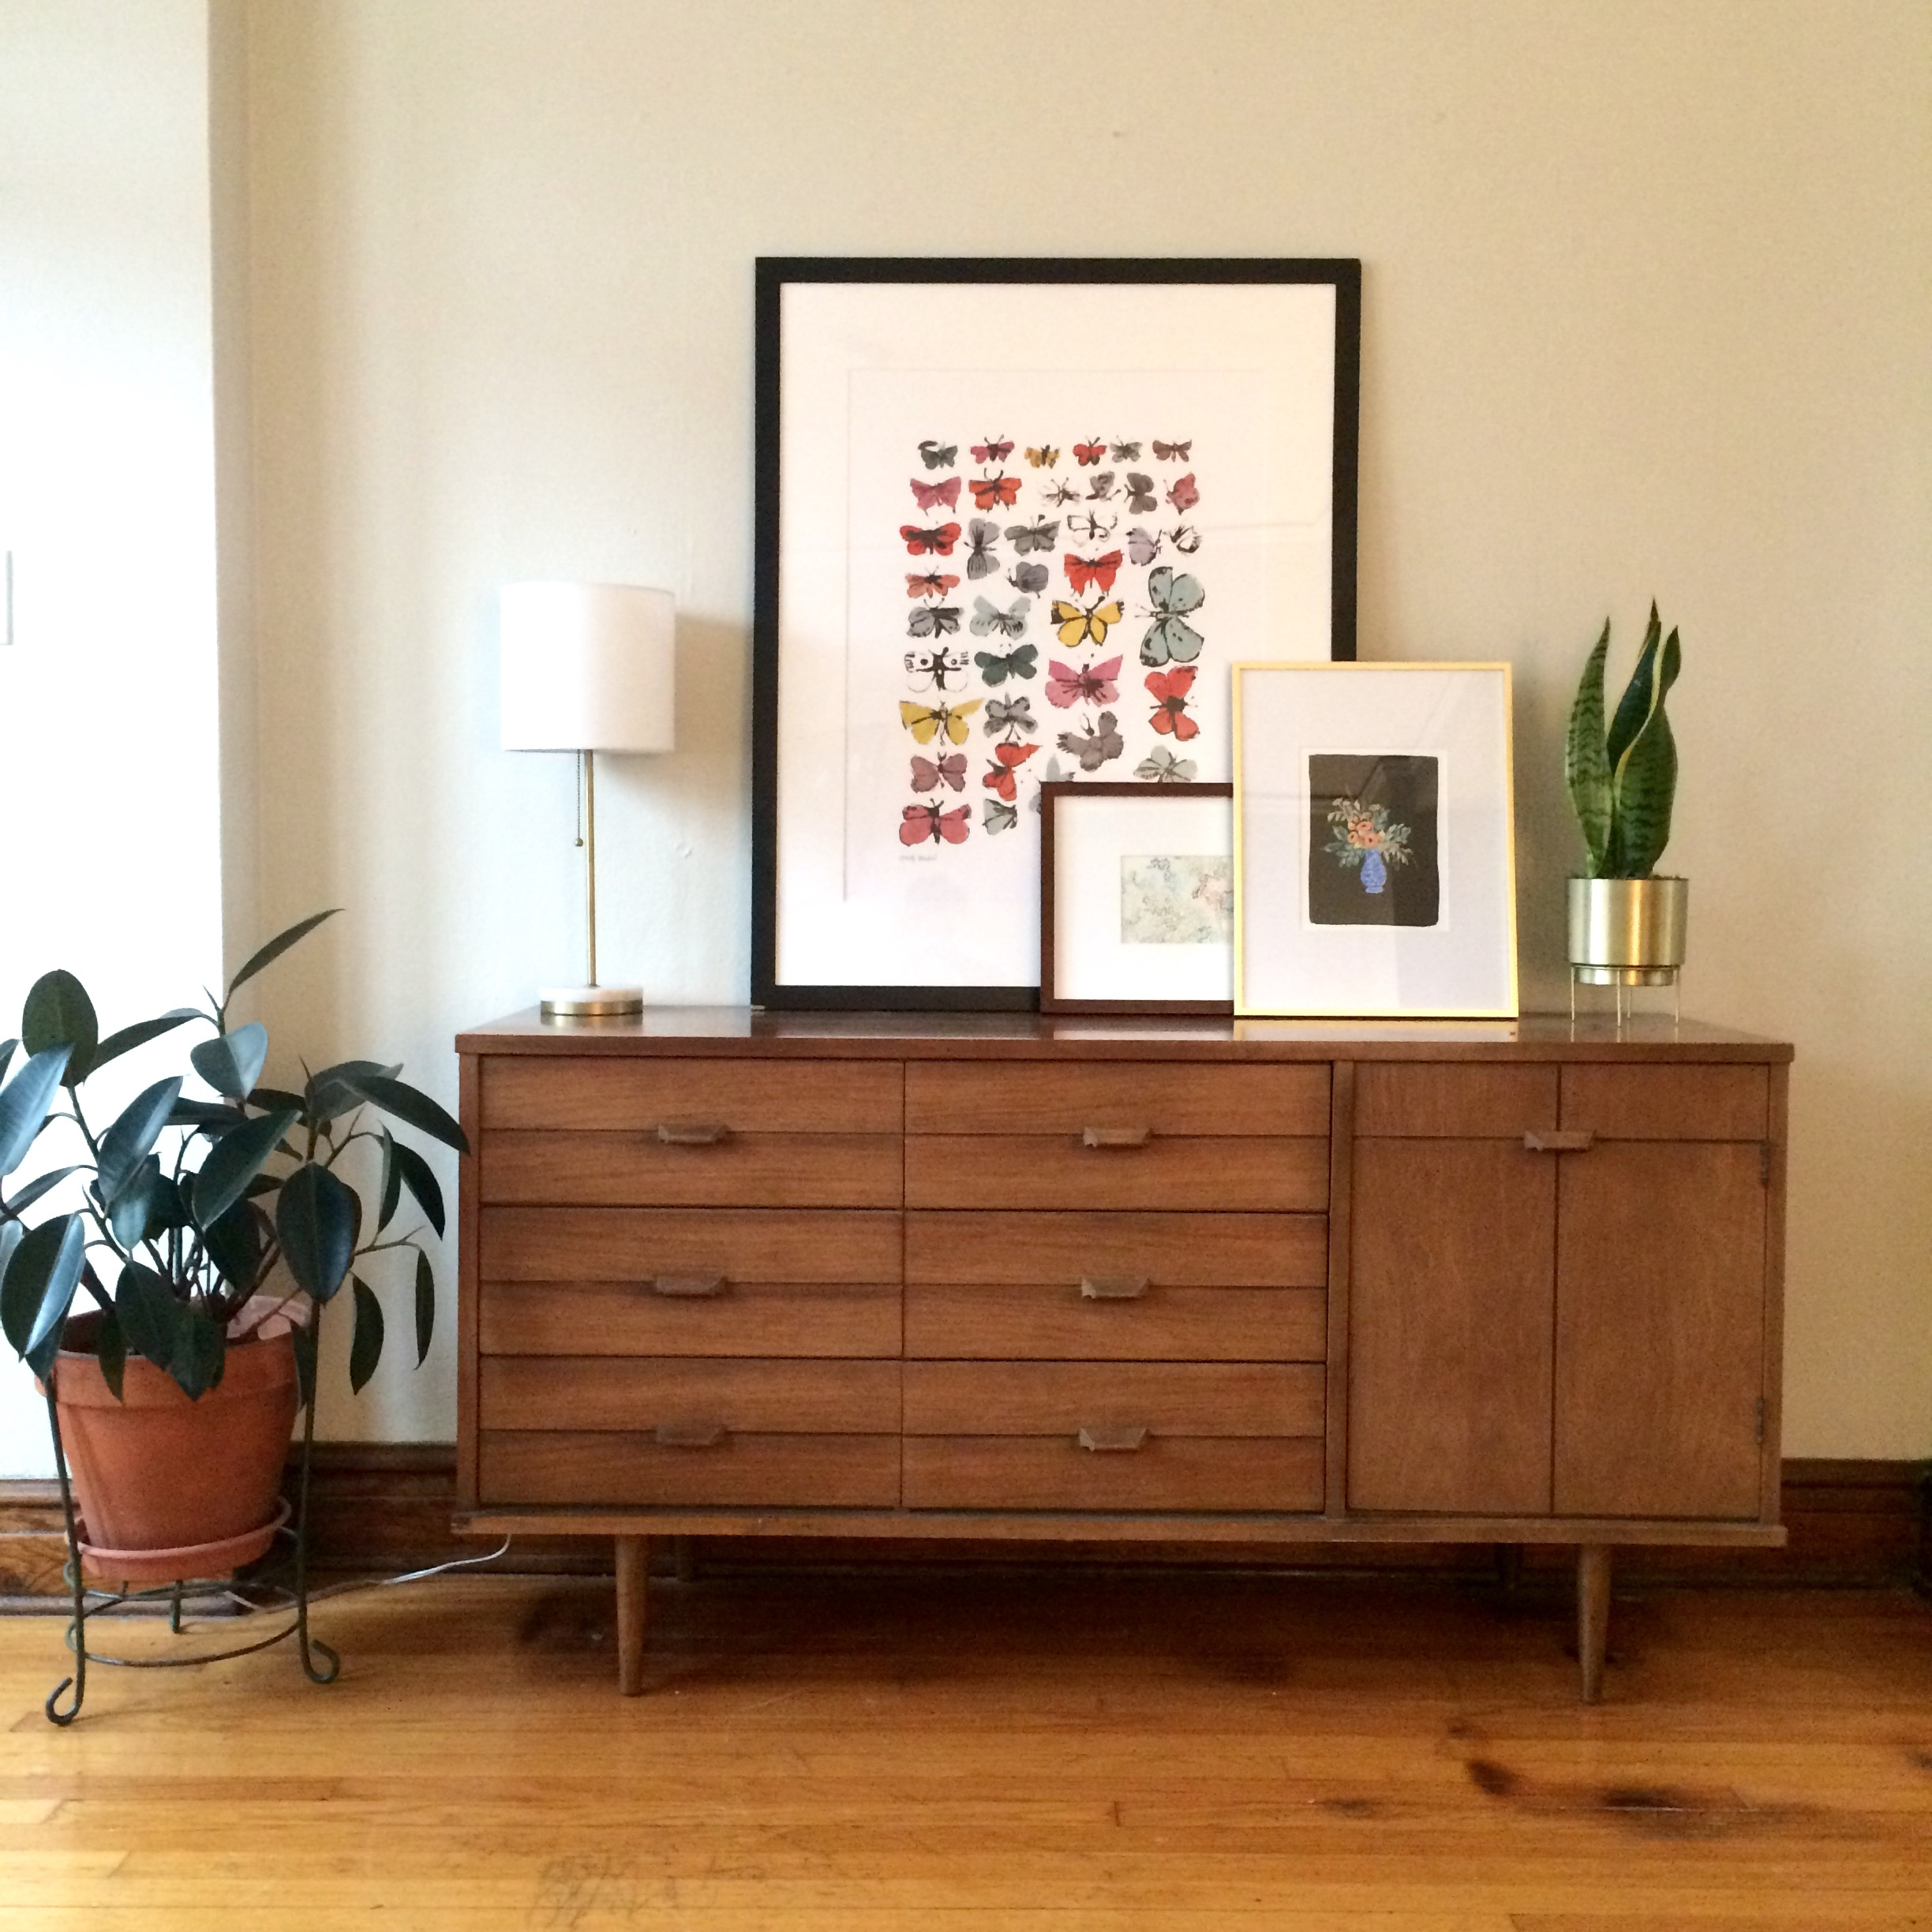 Our sideboard as the center of attention in a previous living room.